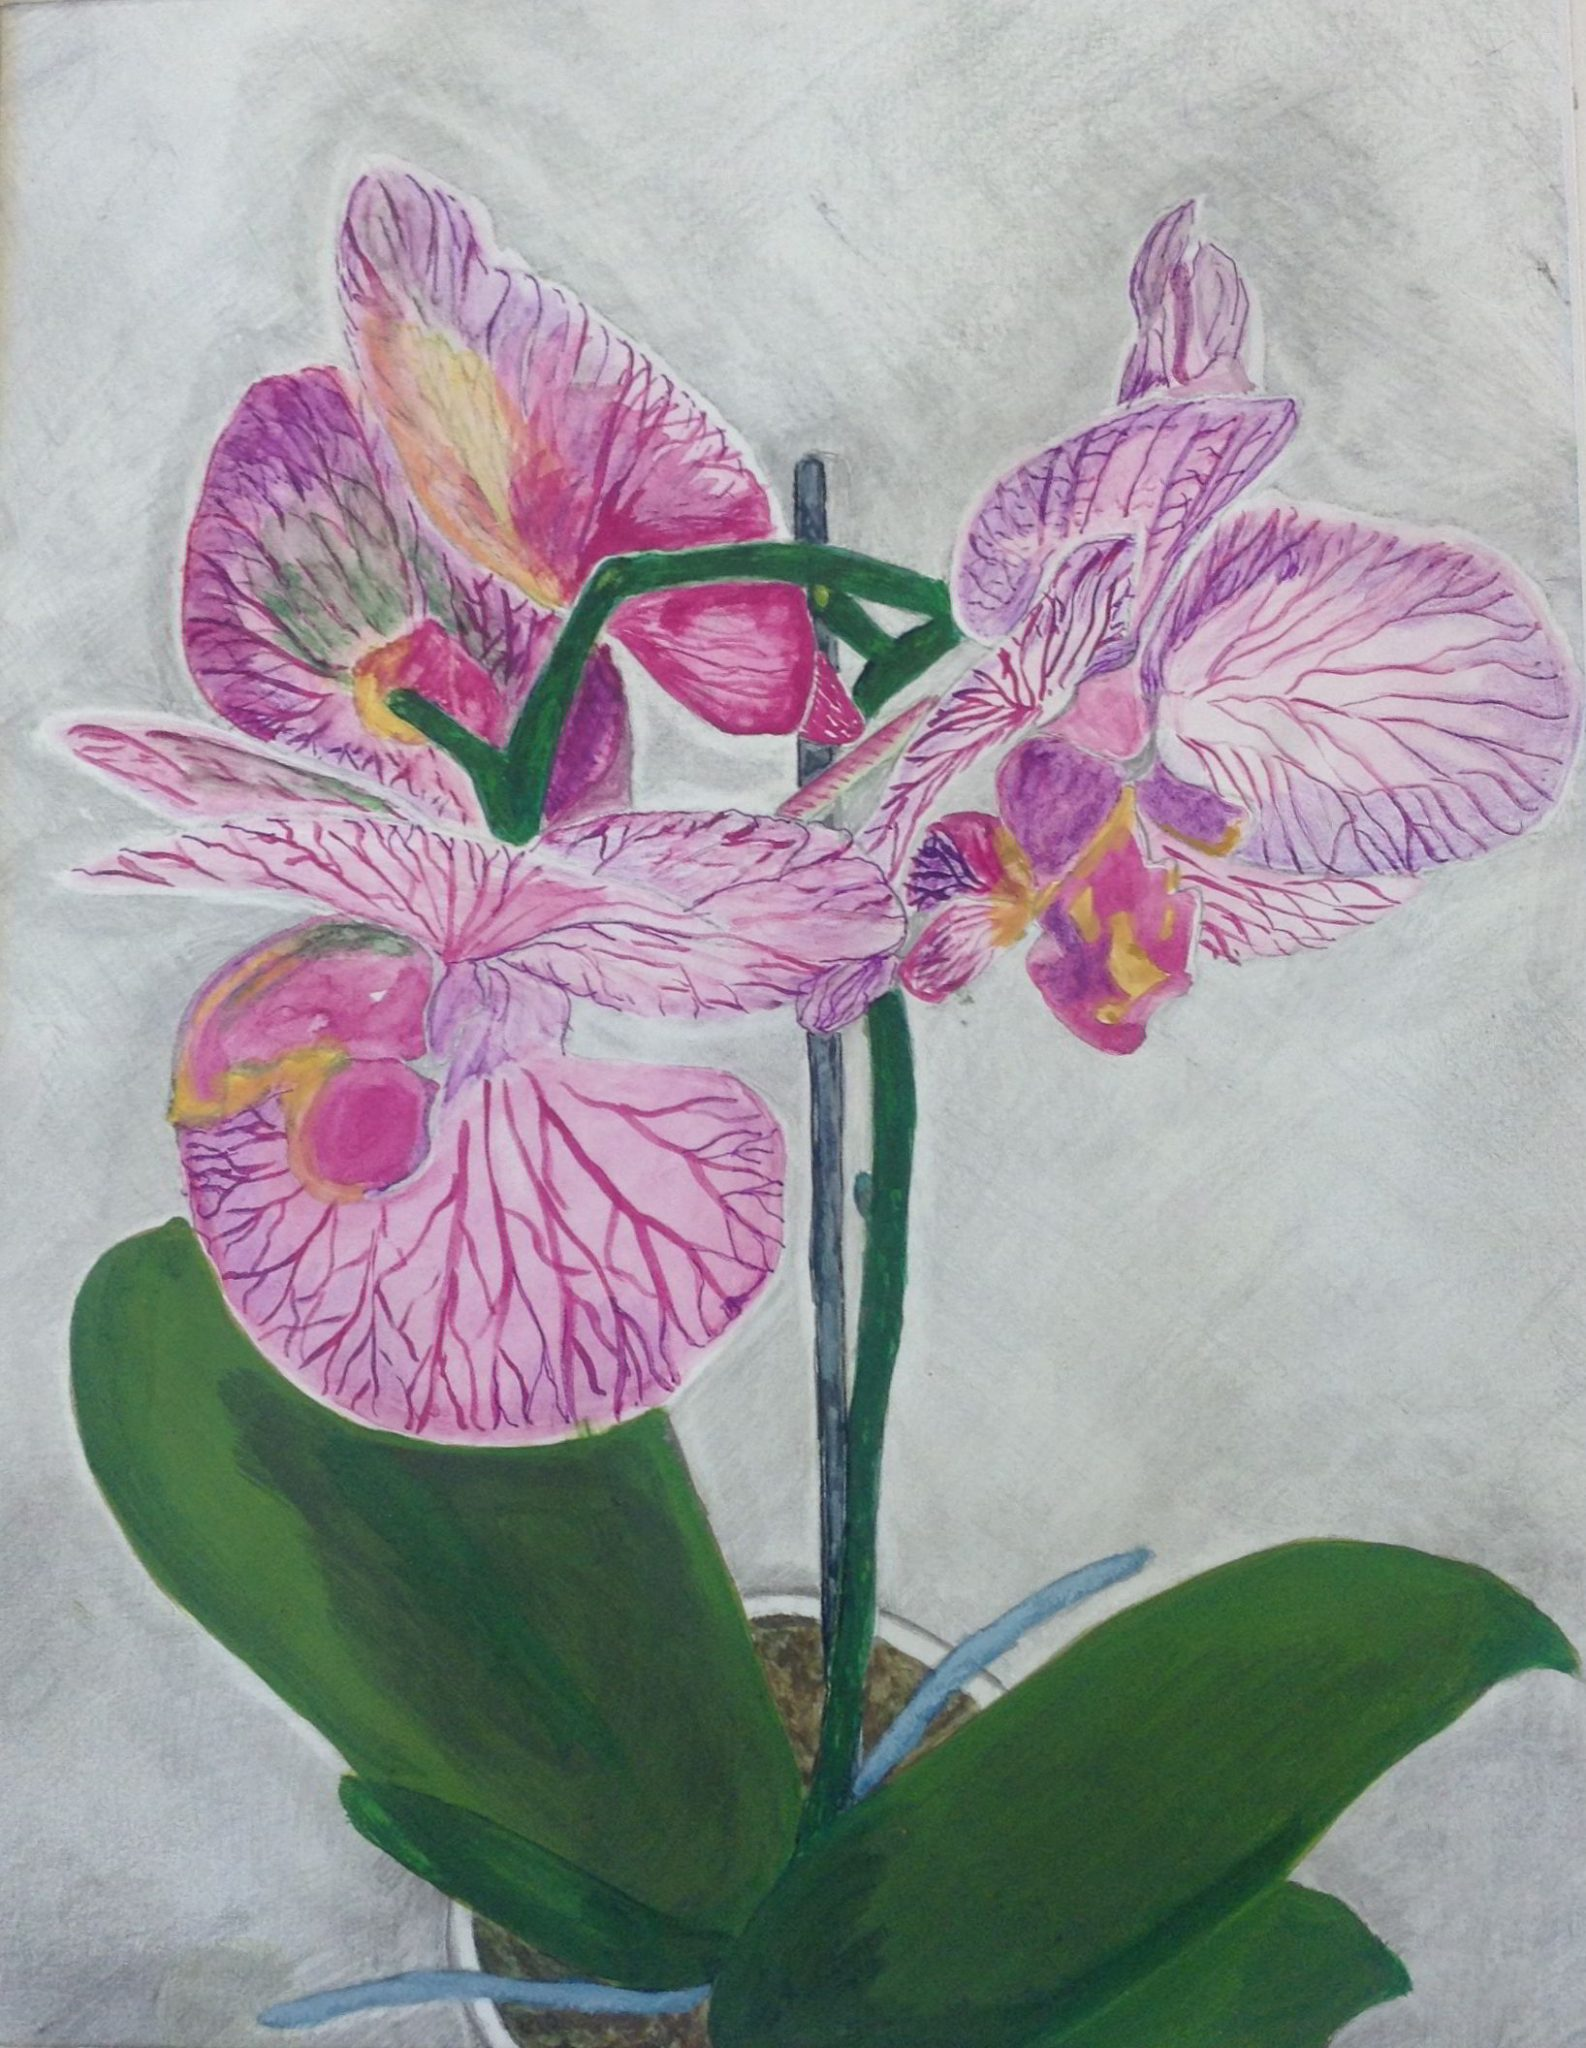 A watercolour painting of an orchid